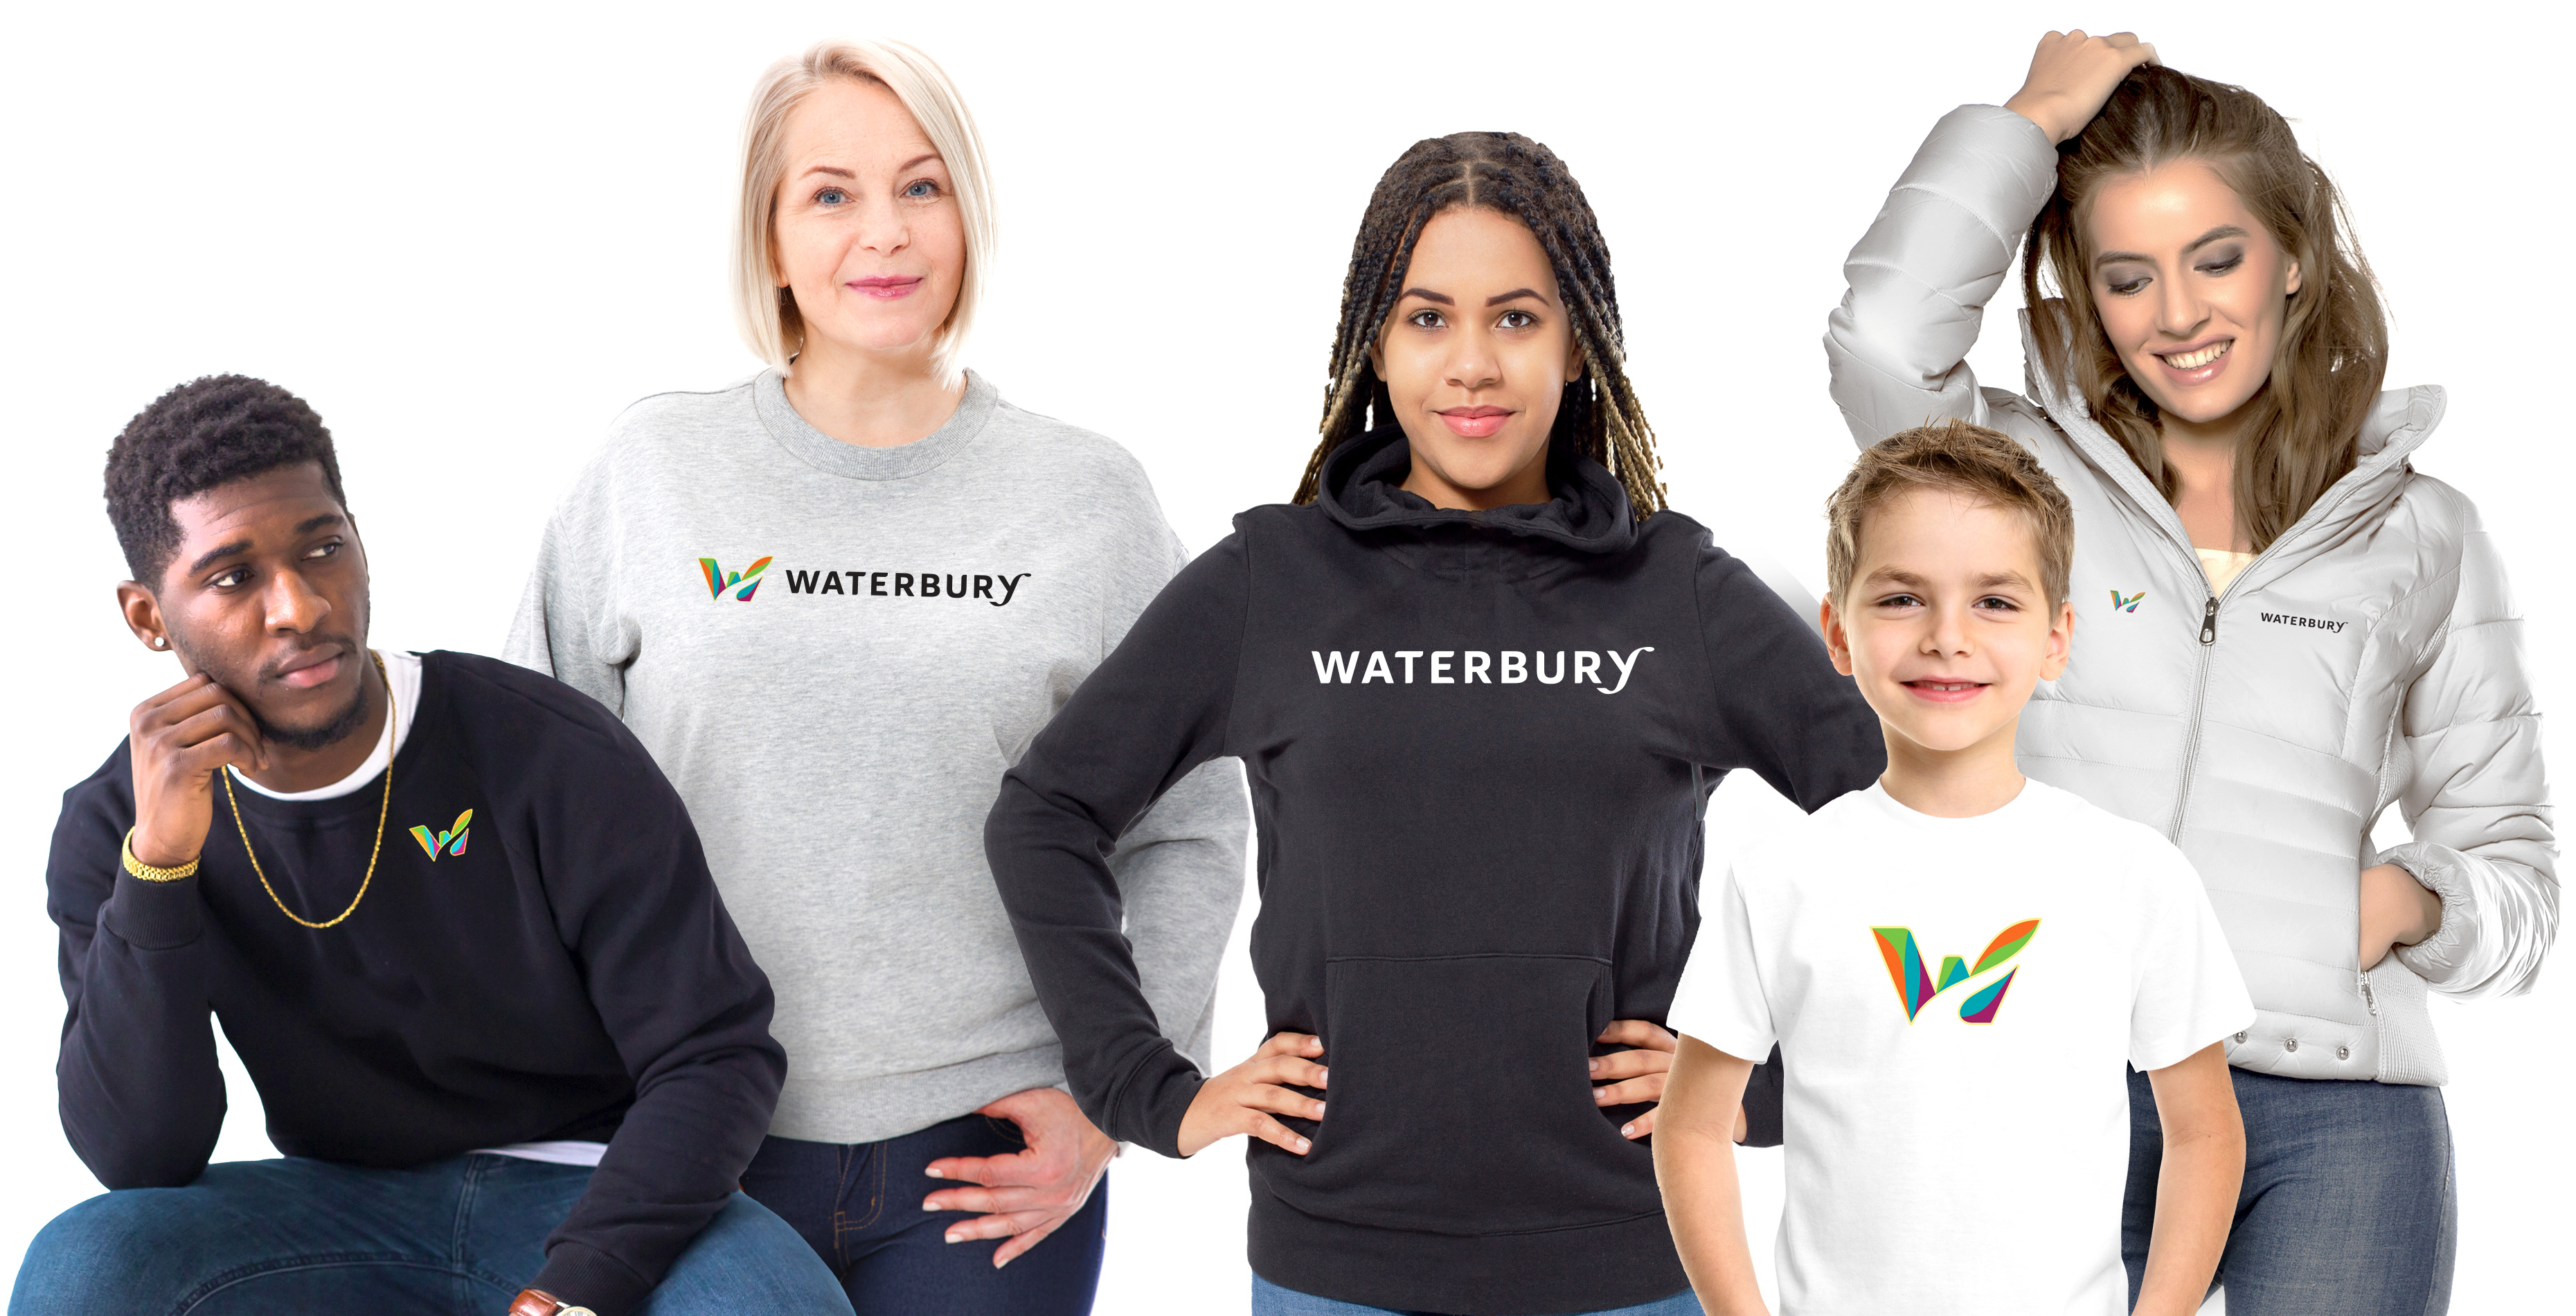 People of all ages wearing Official Waterbury CT brand merchandise and apparel